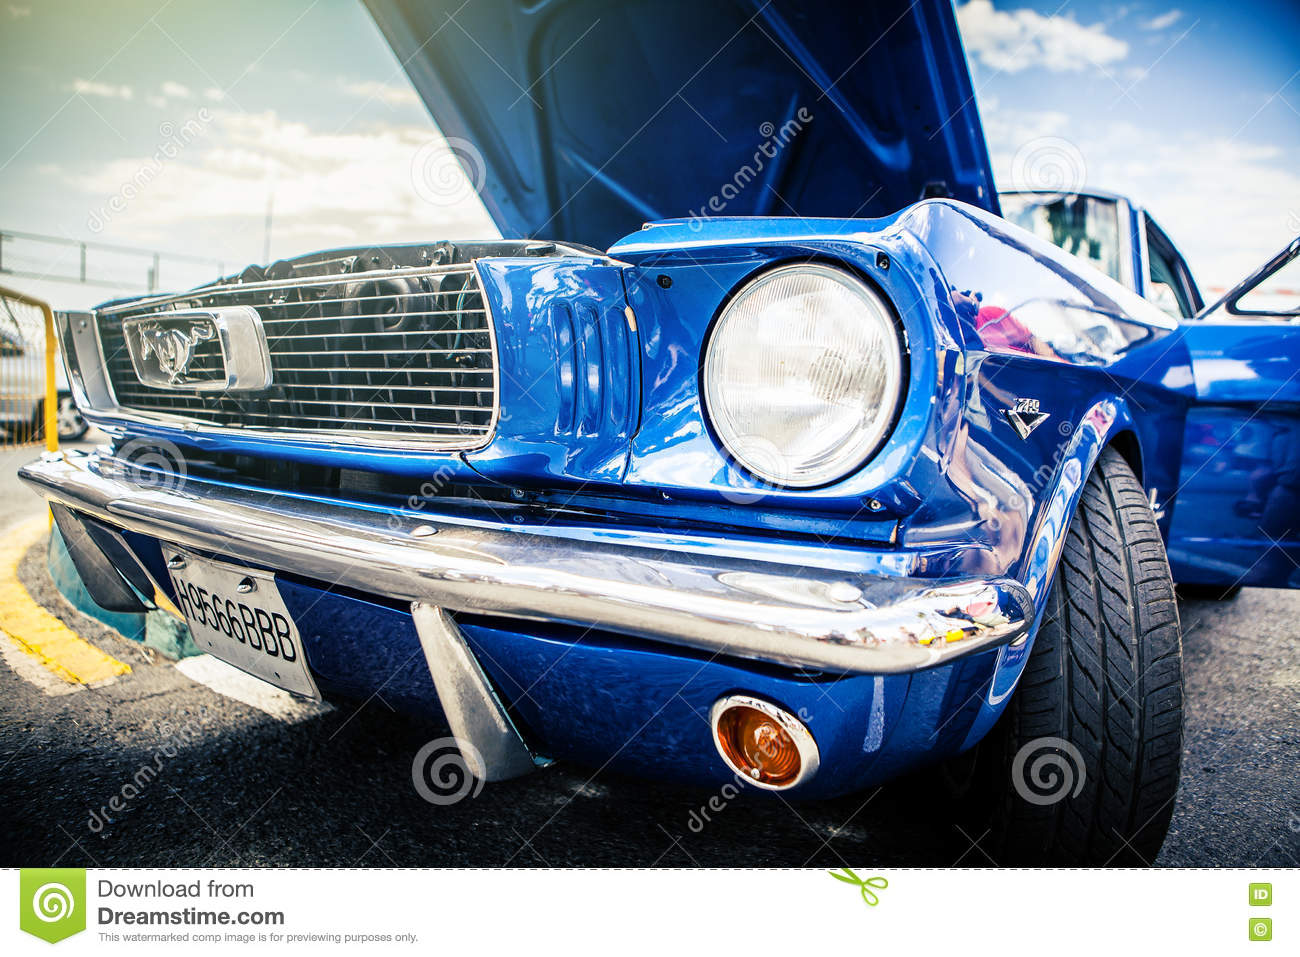 Benalmadena, Spain - June 21, 2015: Front view of classic Ford Mustang in blue color.